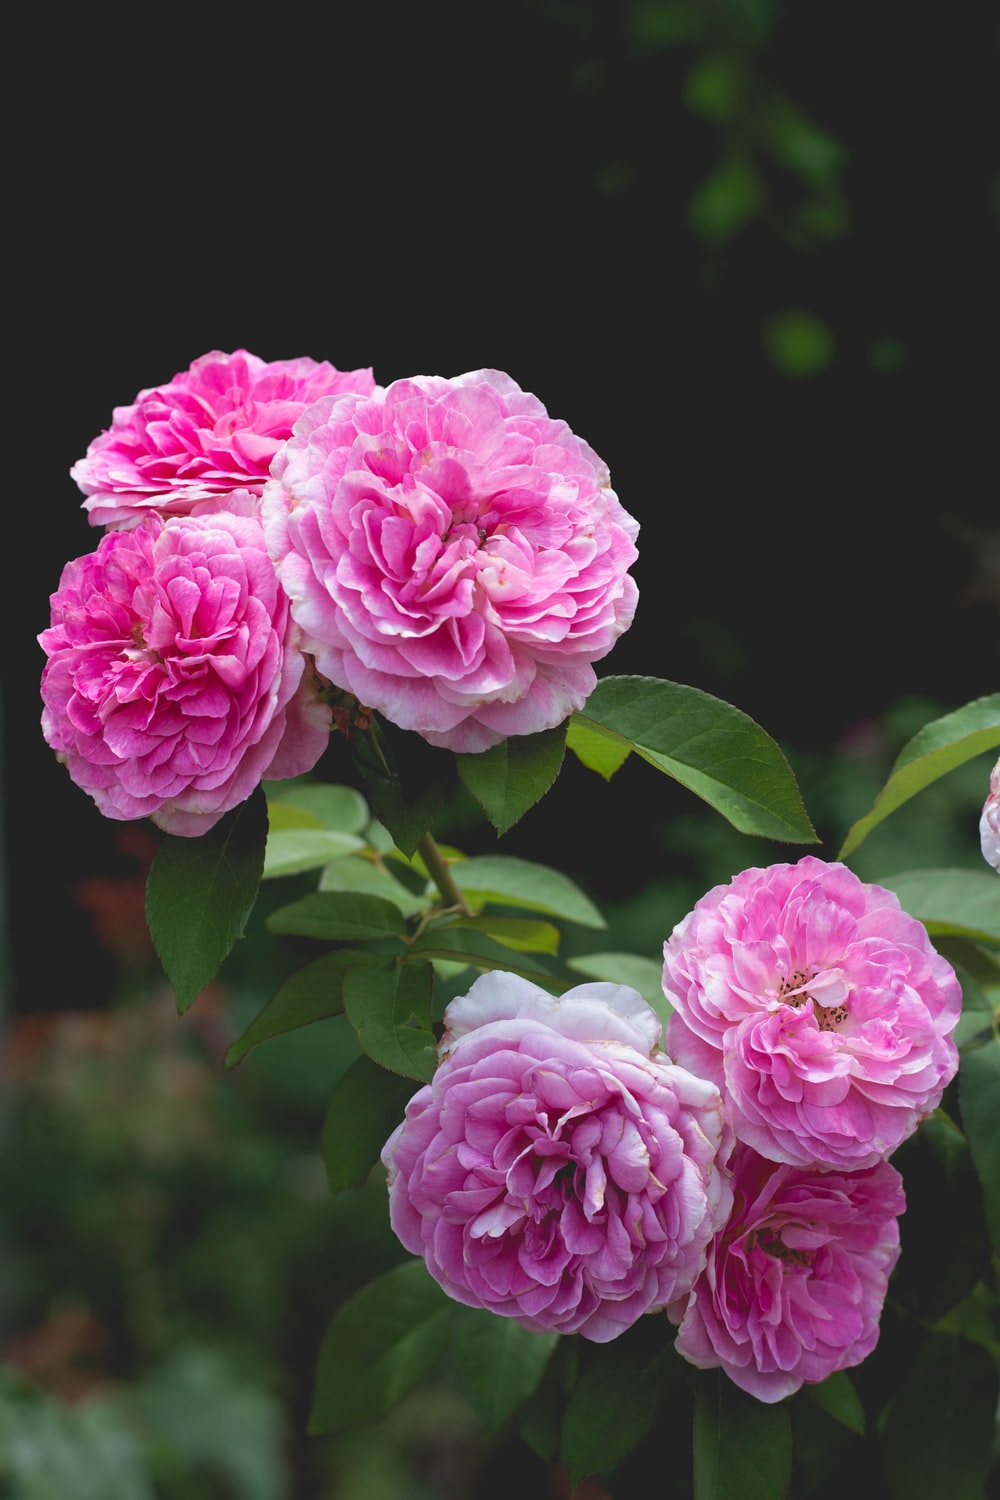 cluster of pink roses